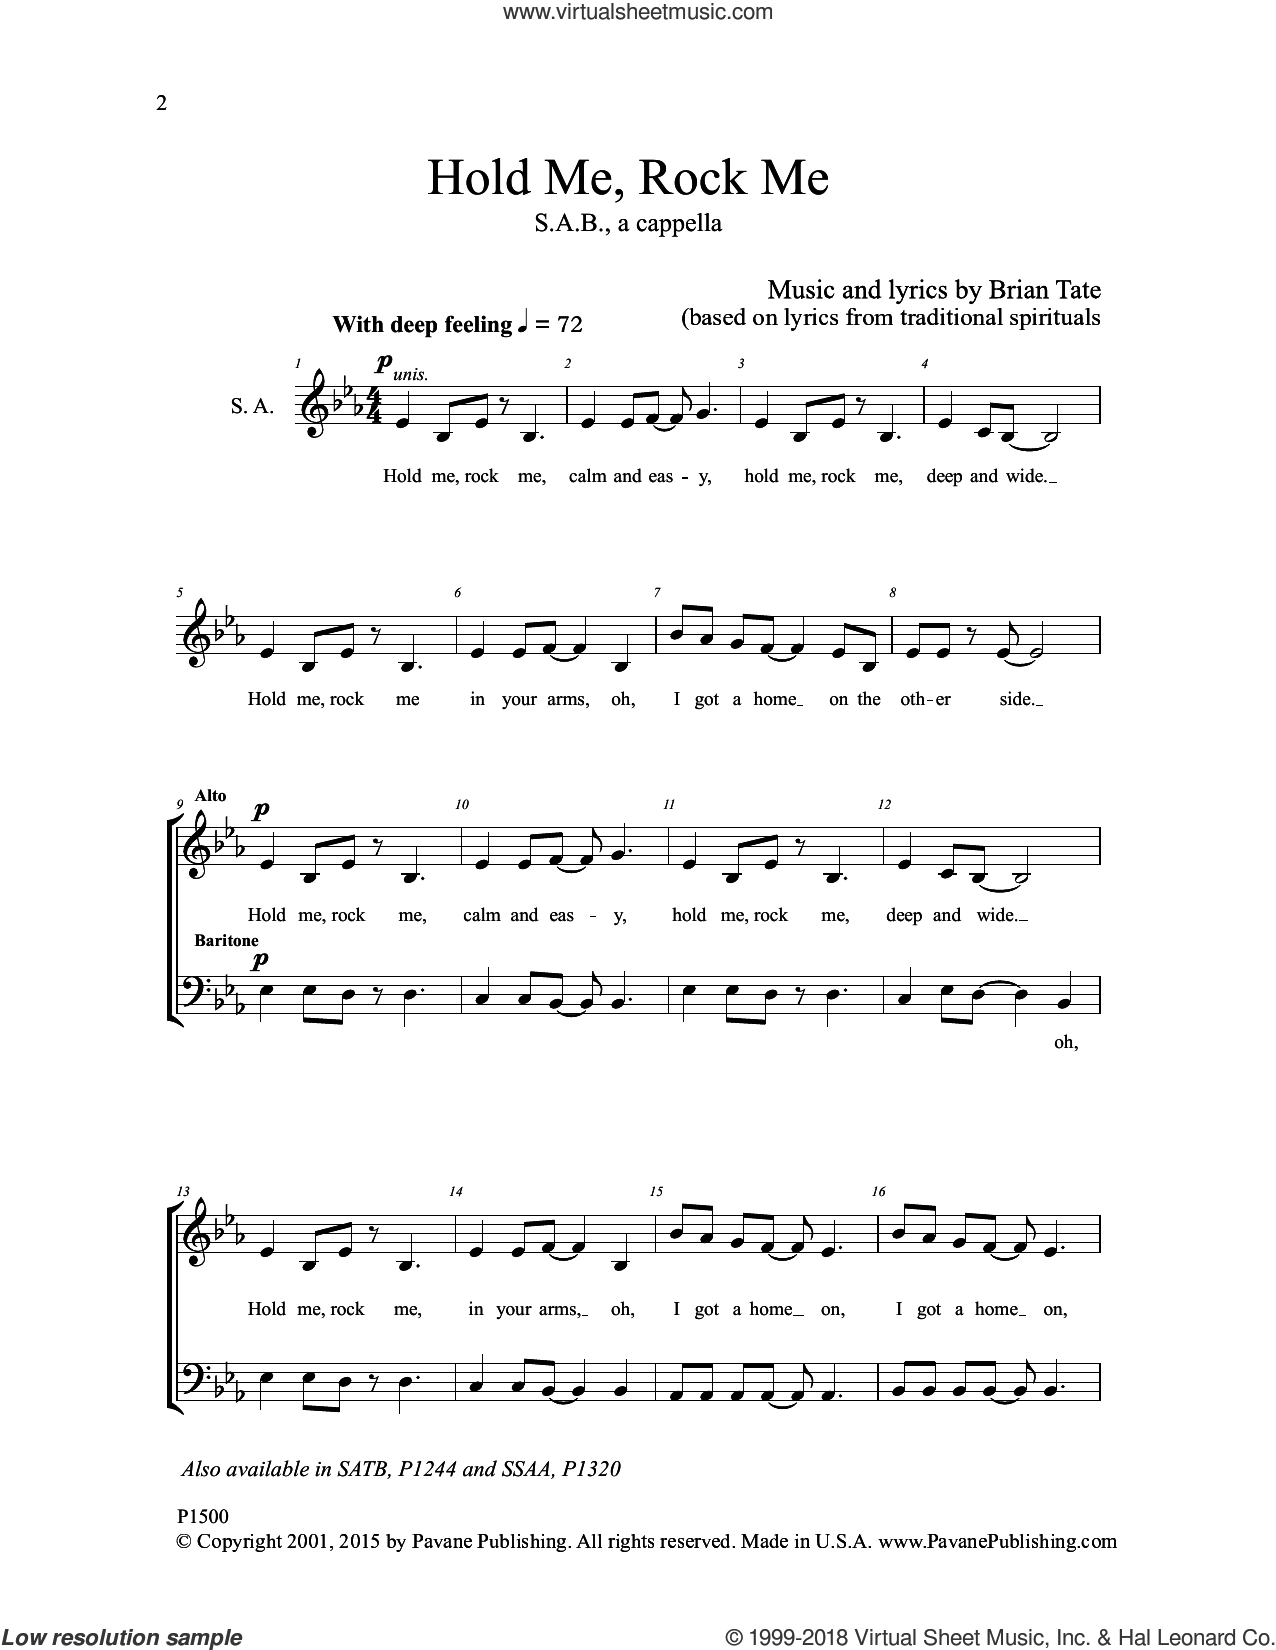 Hold Me, Rock Me sheet music for choir by Brian Tate, intermediate skill level